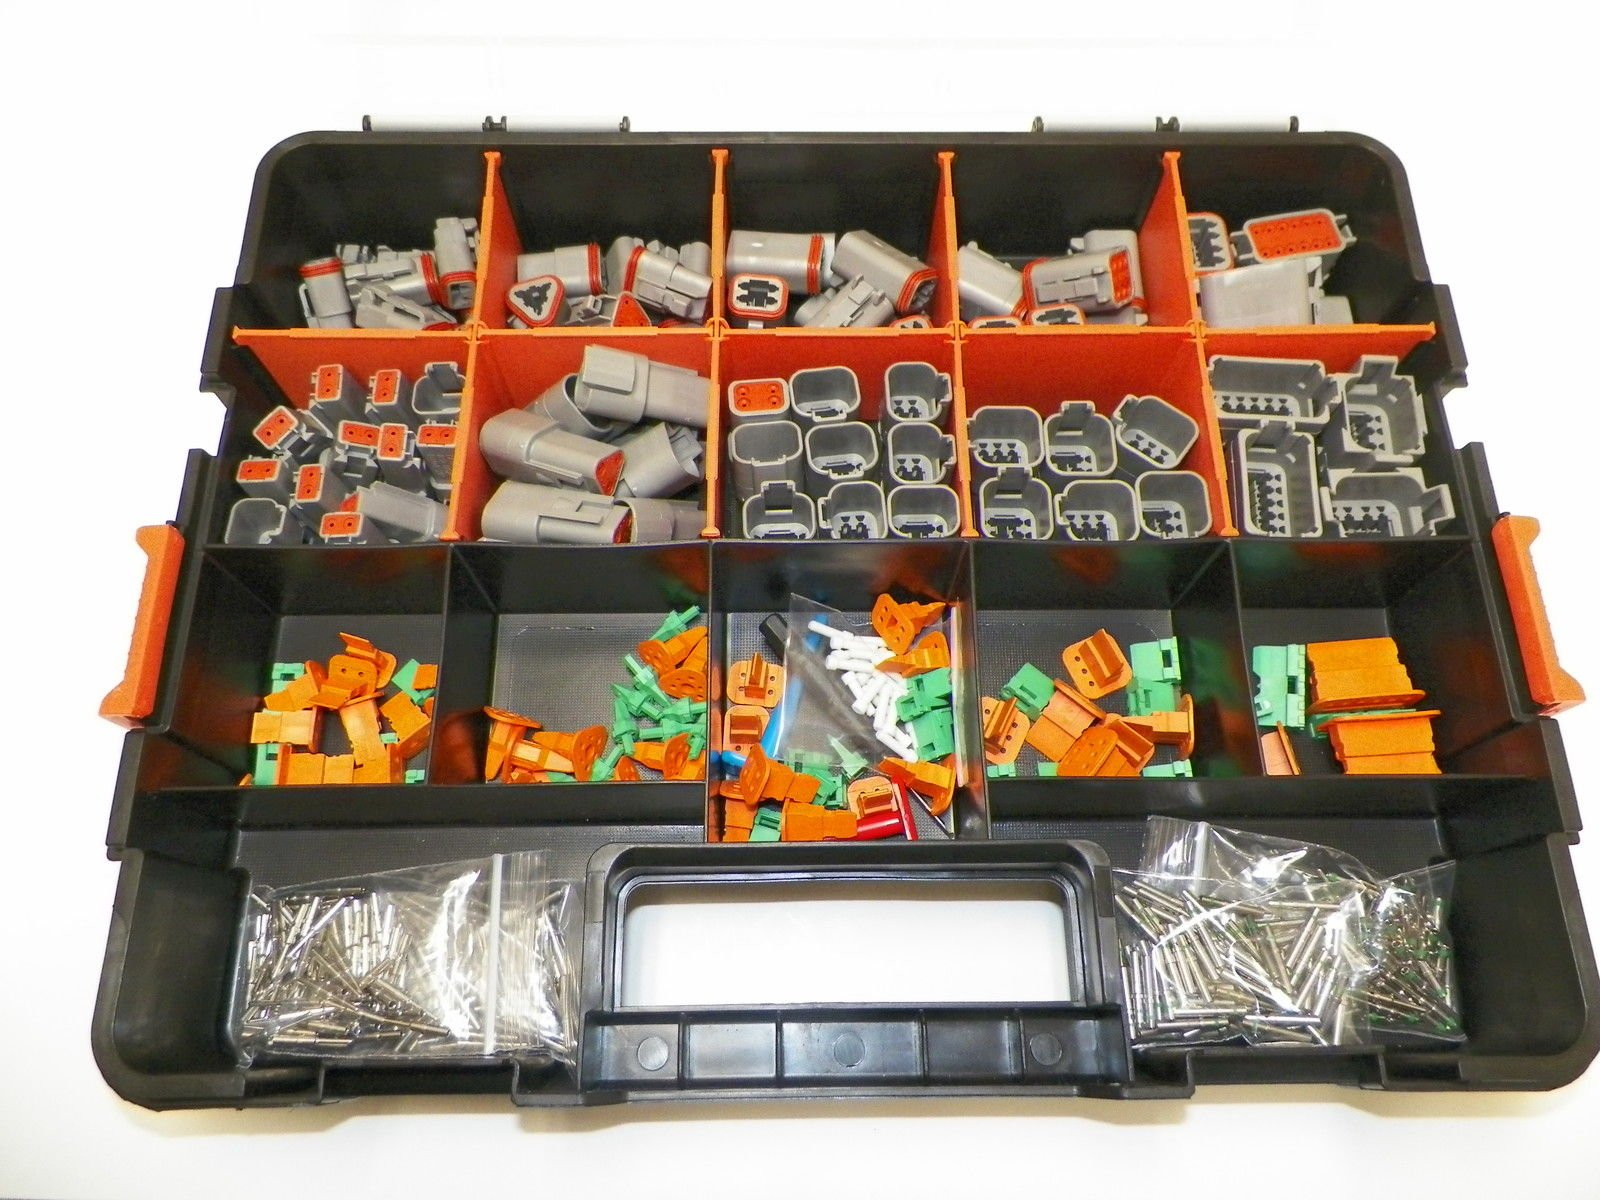 DEUTSCH DT CONNECTOR KIT GRAY OEM 504 Piece Kit SOLID TERMINALS + REMOVAL TOOLS, MALE & FEMALE